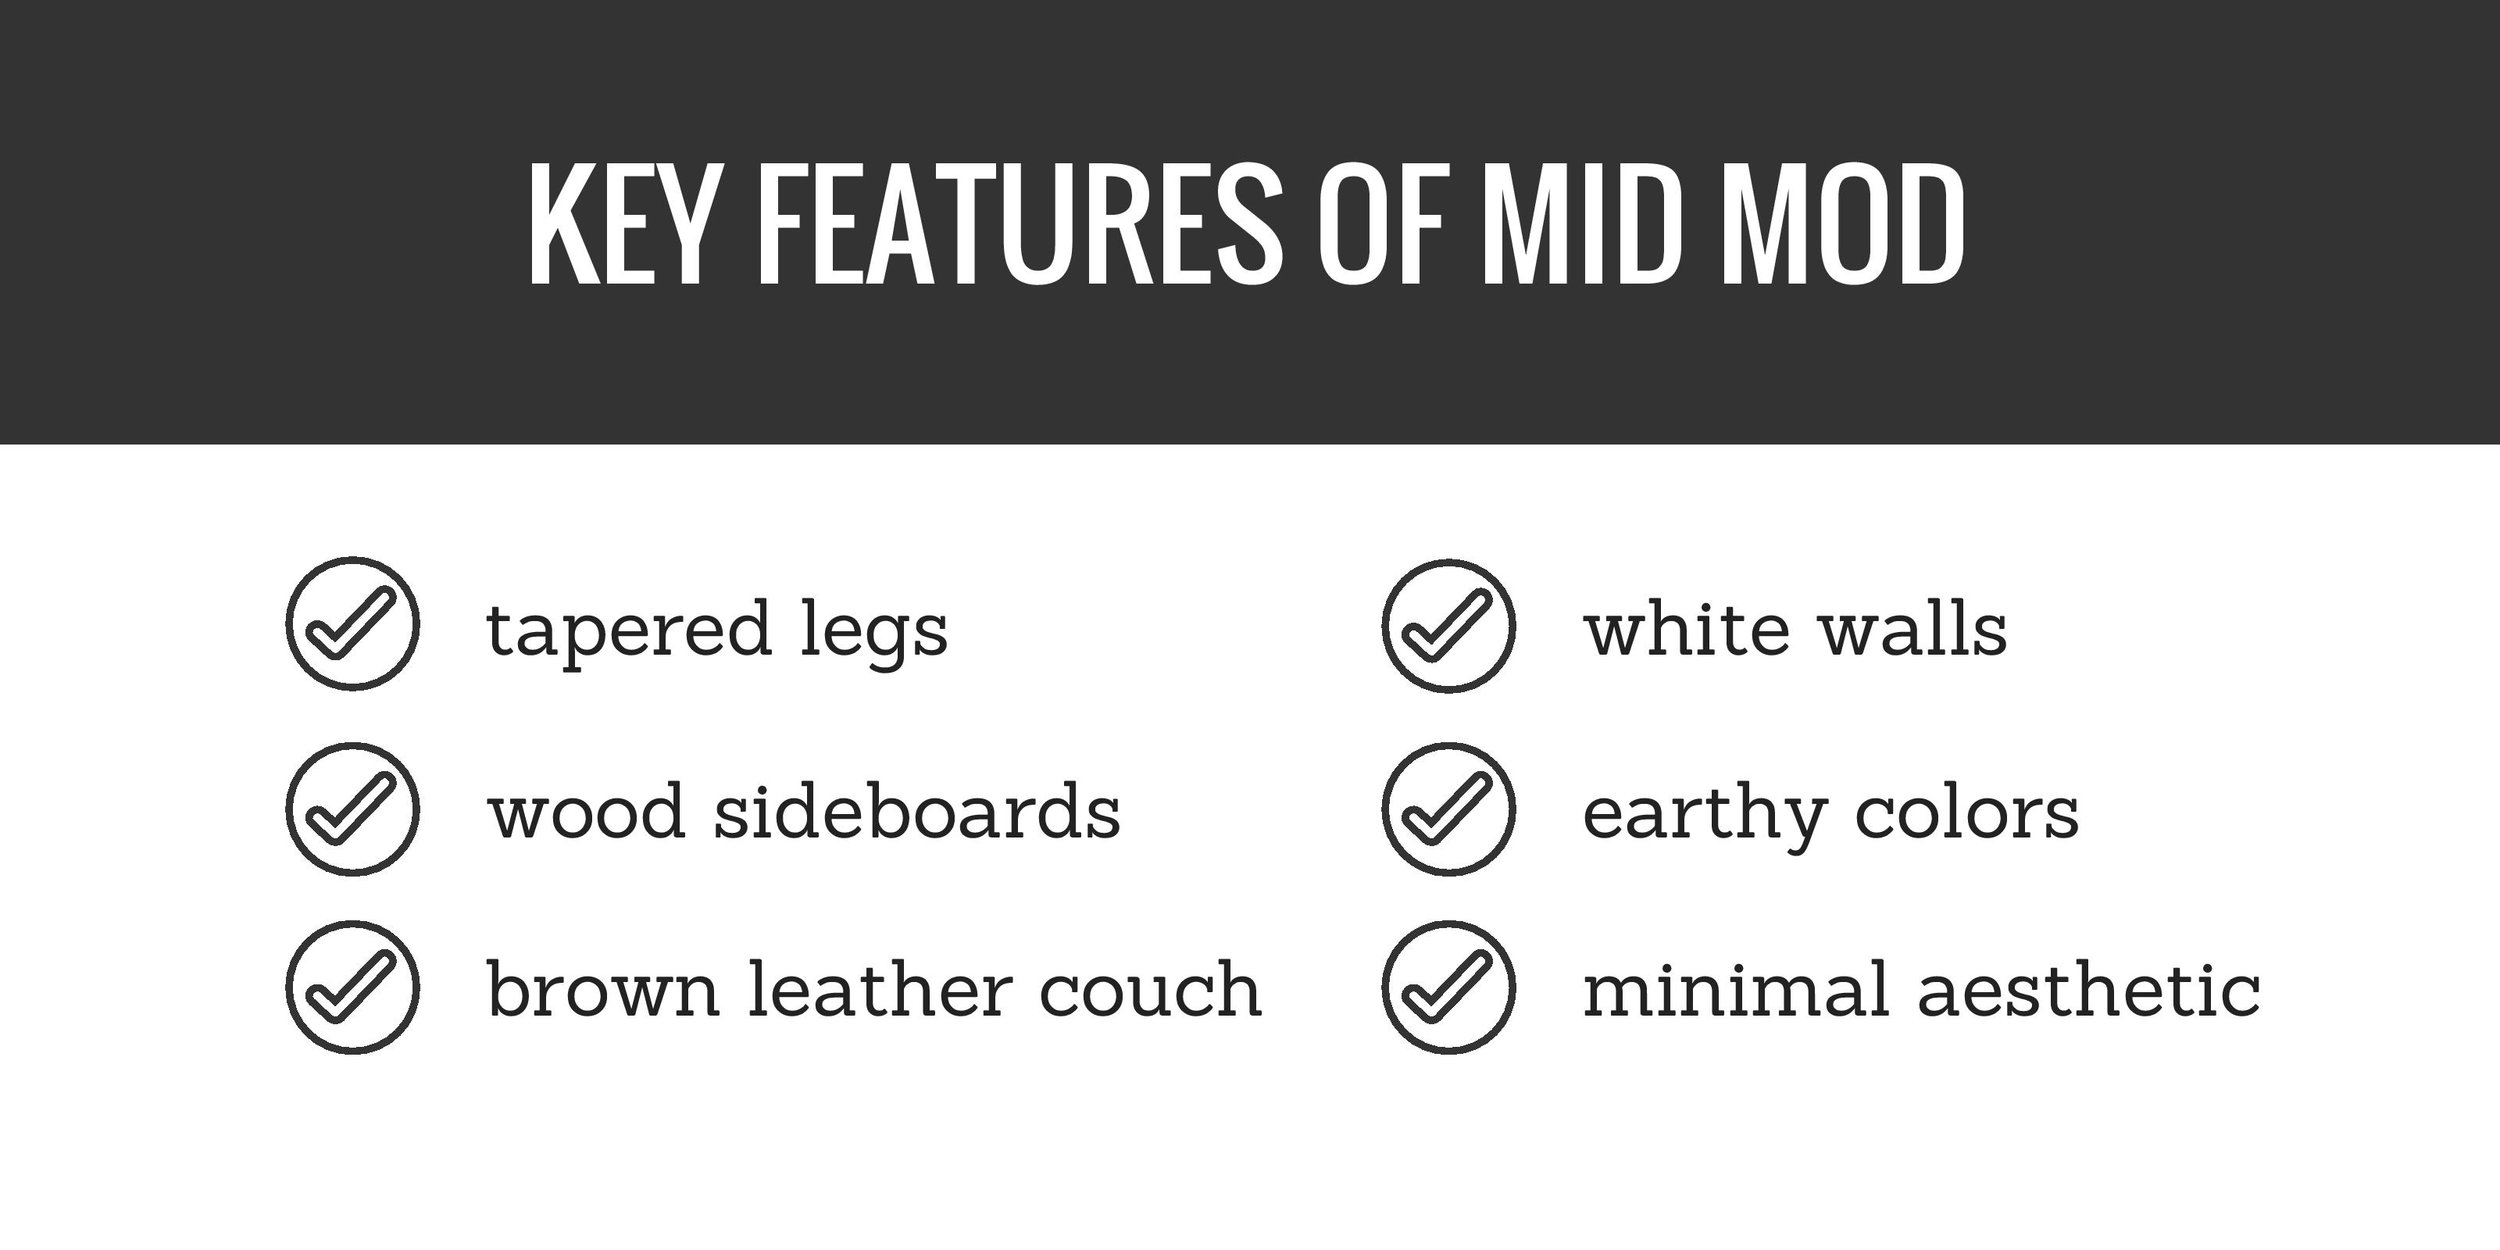 key features of mid mod